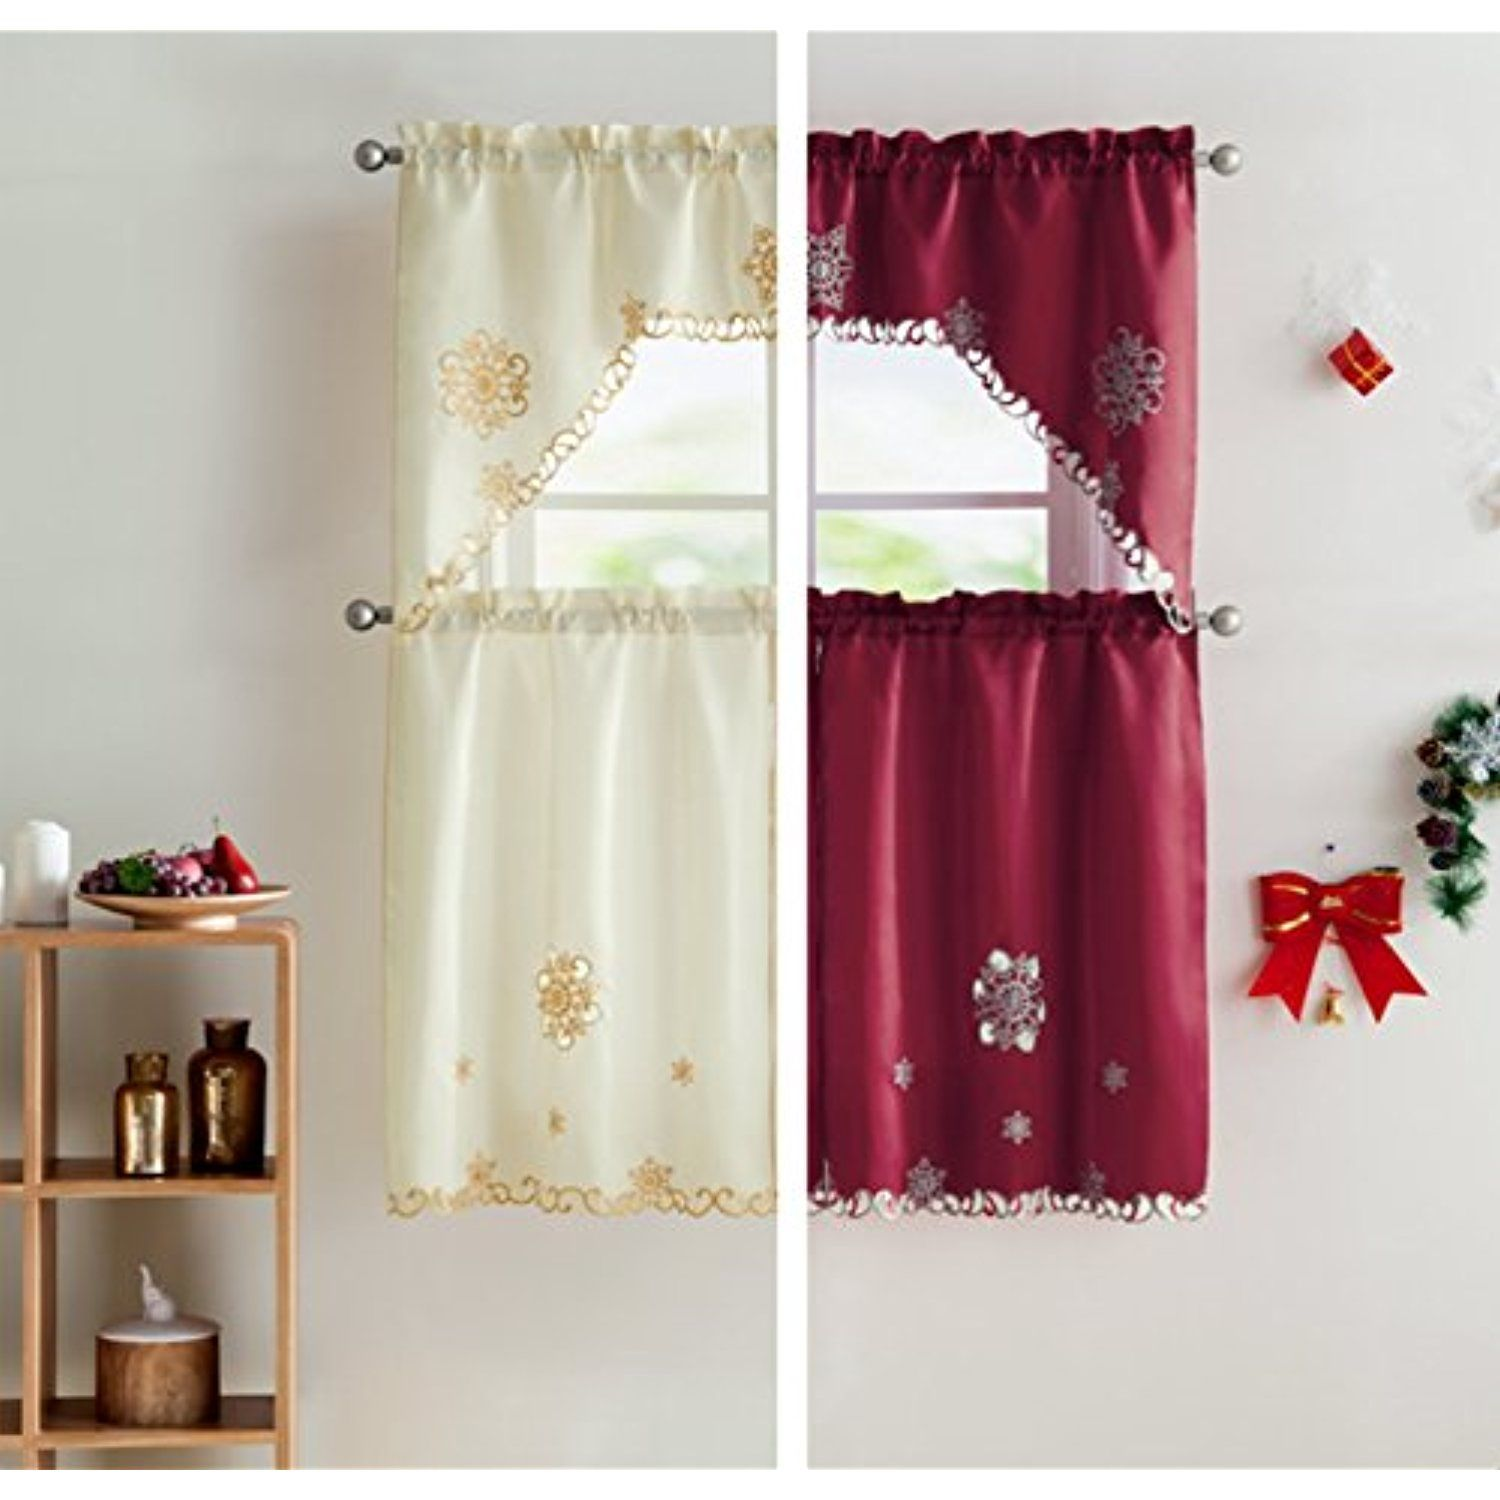 Vcny home starburst christmas kitchen curtain tier homedcor